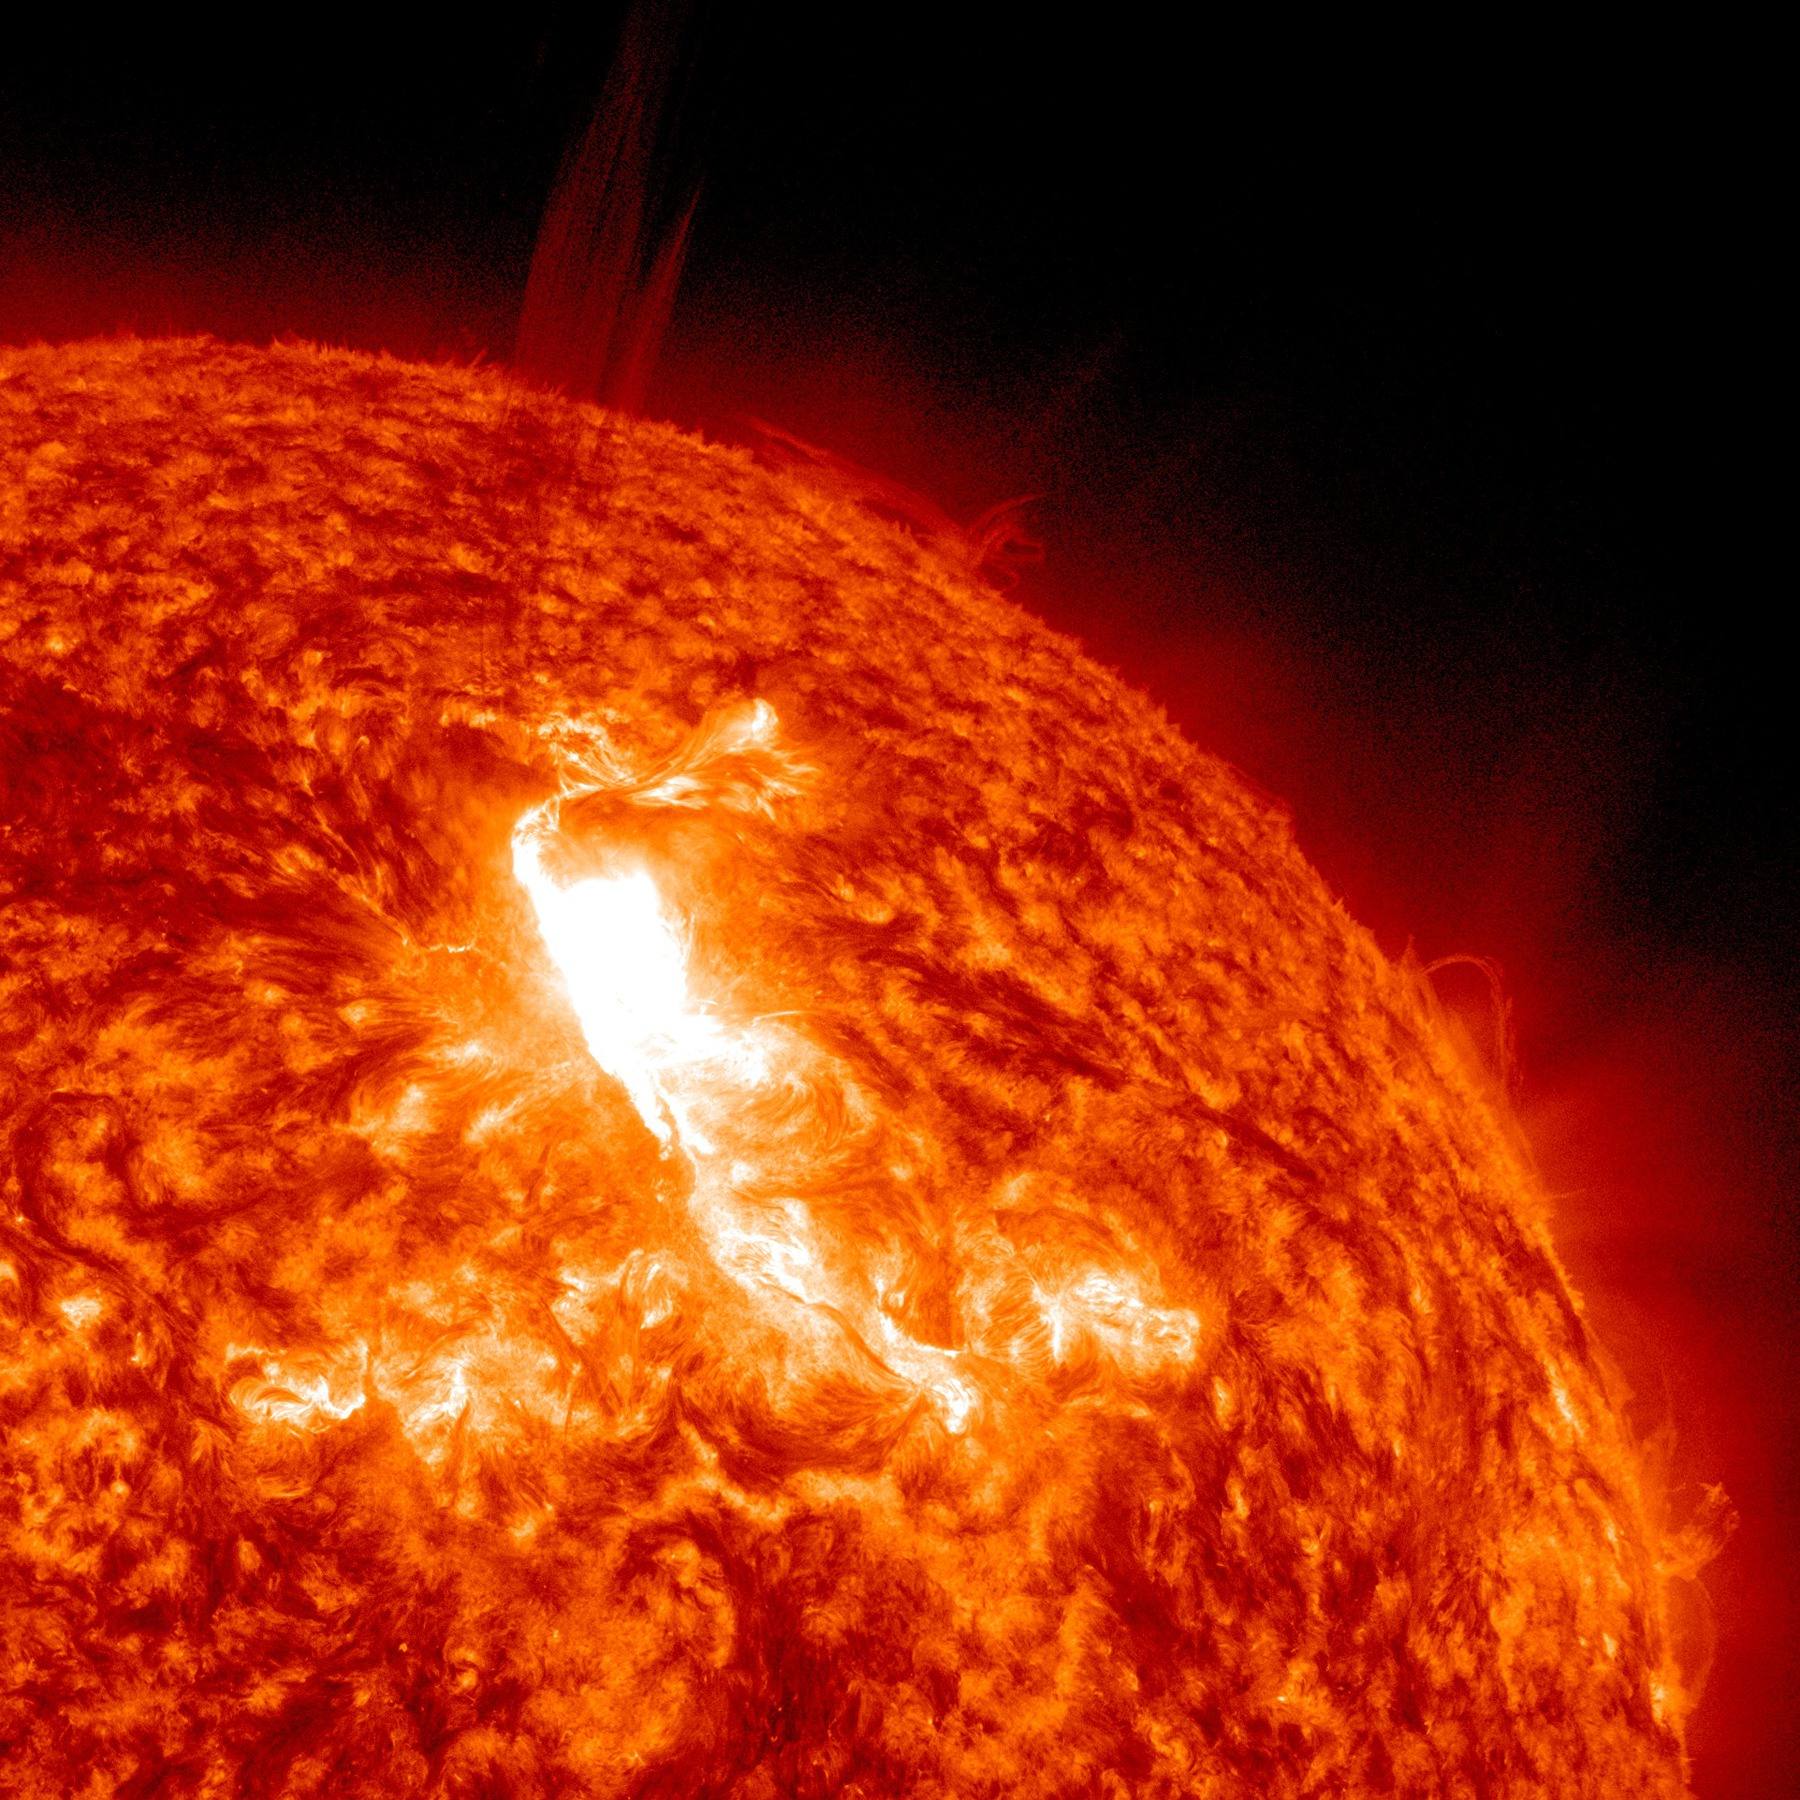 Why is space so cold if the sun is so hot?